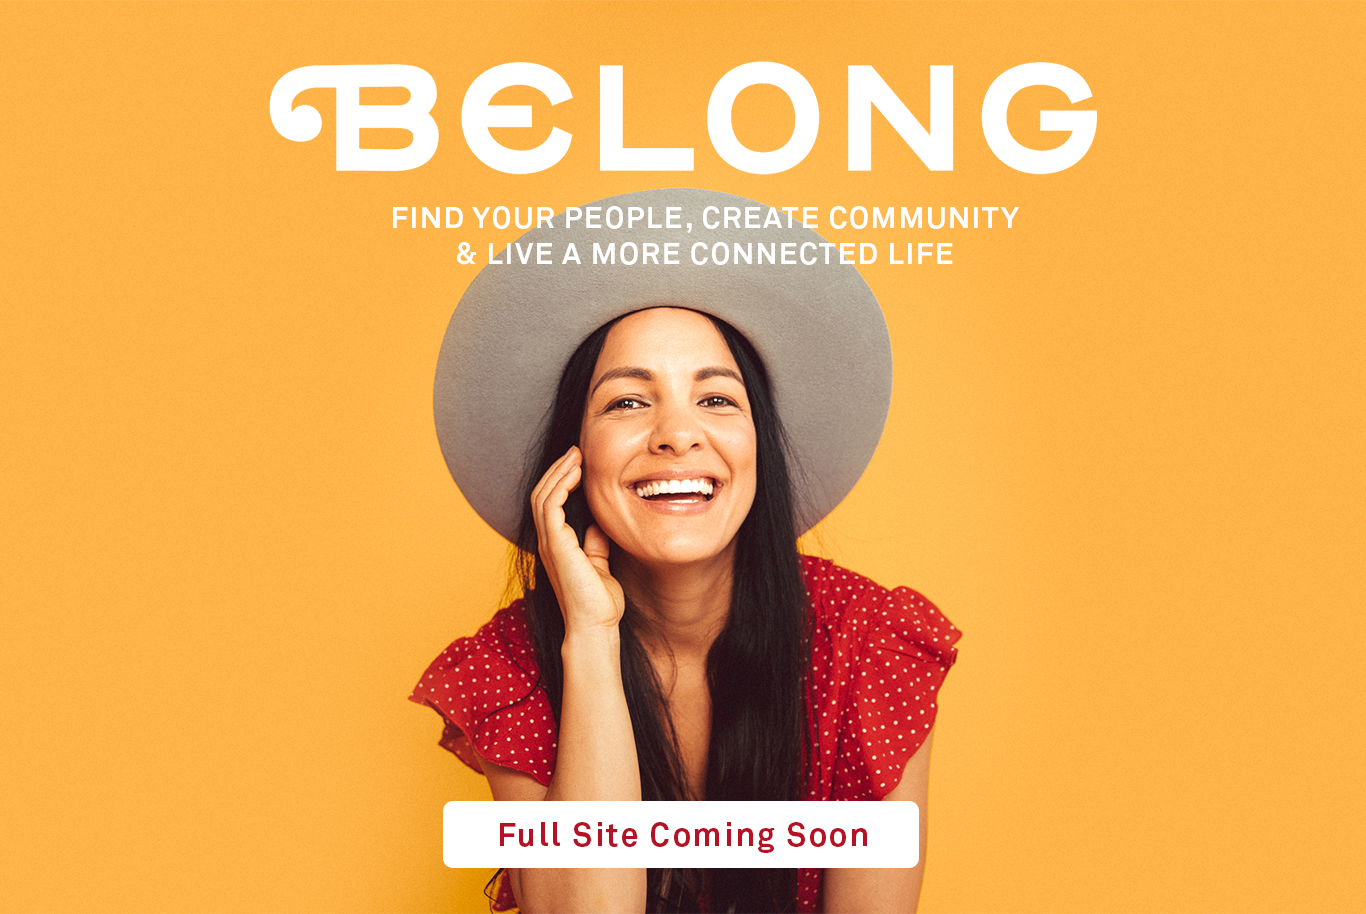 Belong Book Website Coming Soon!